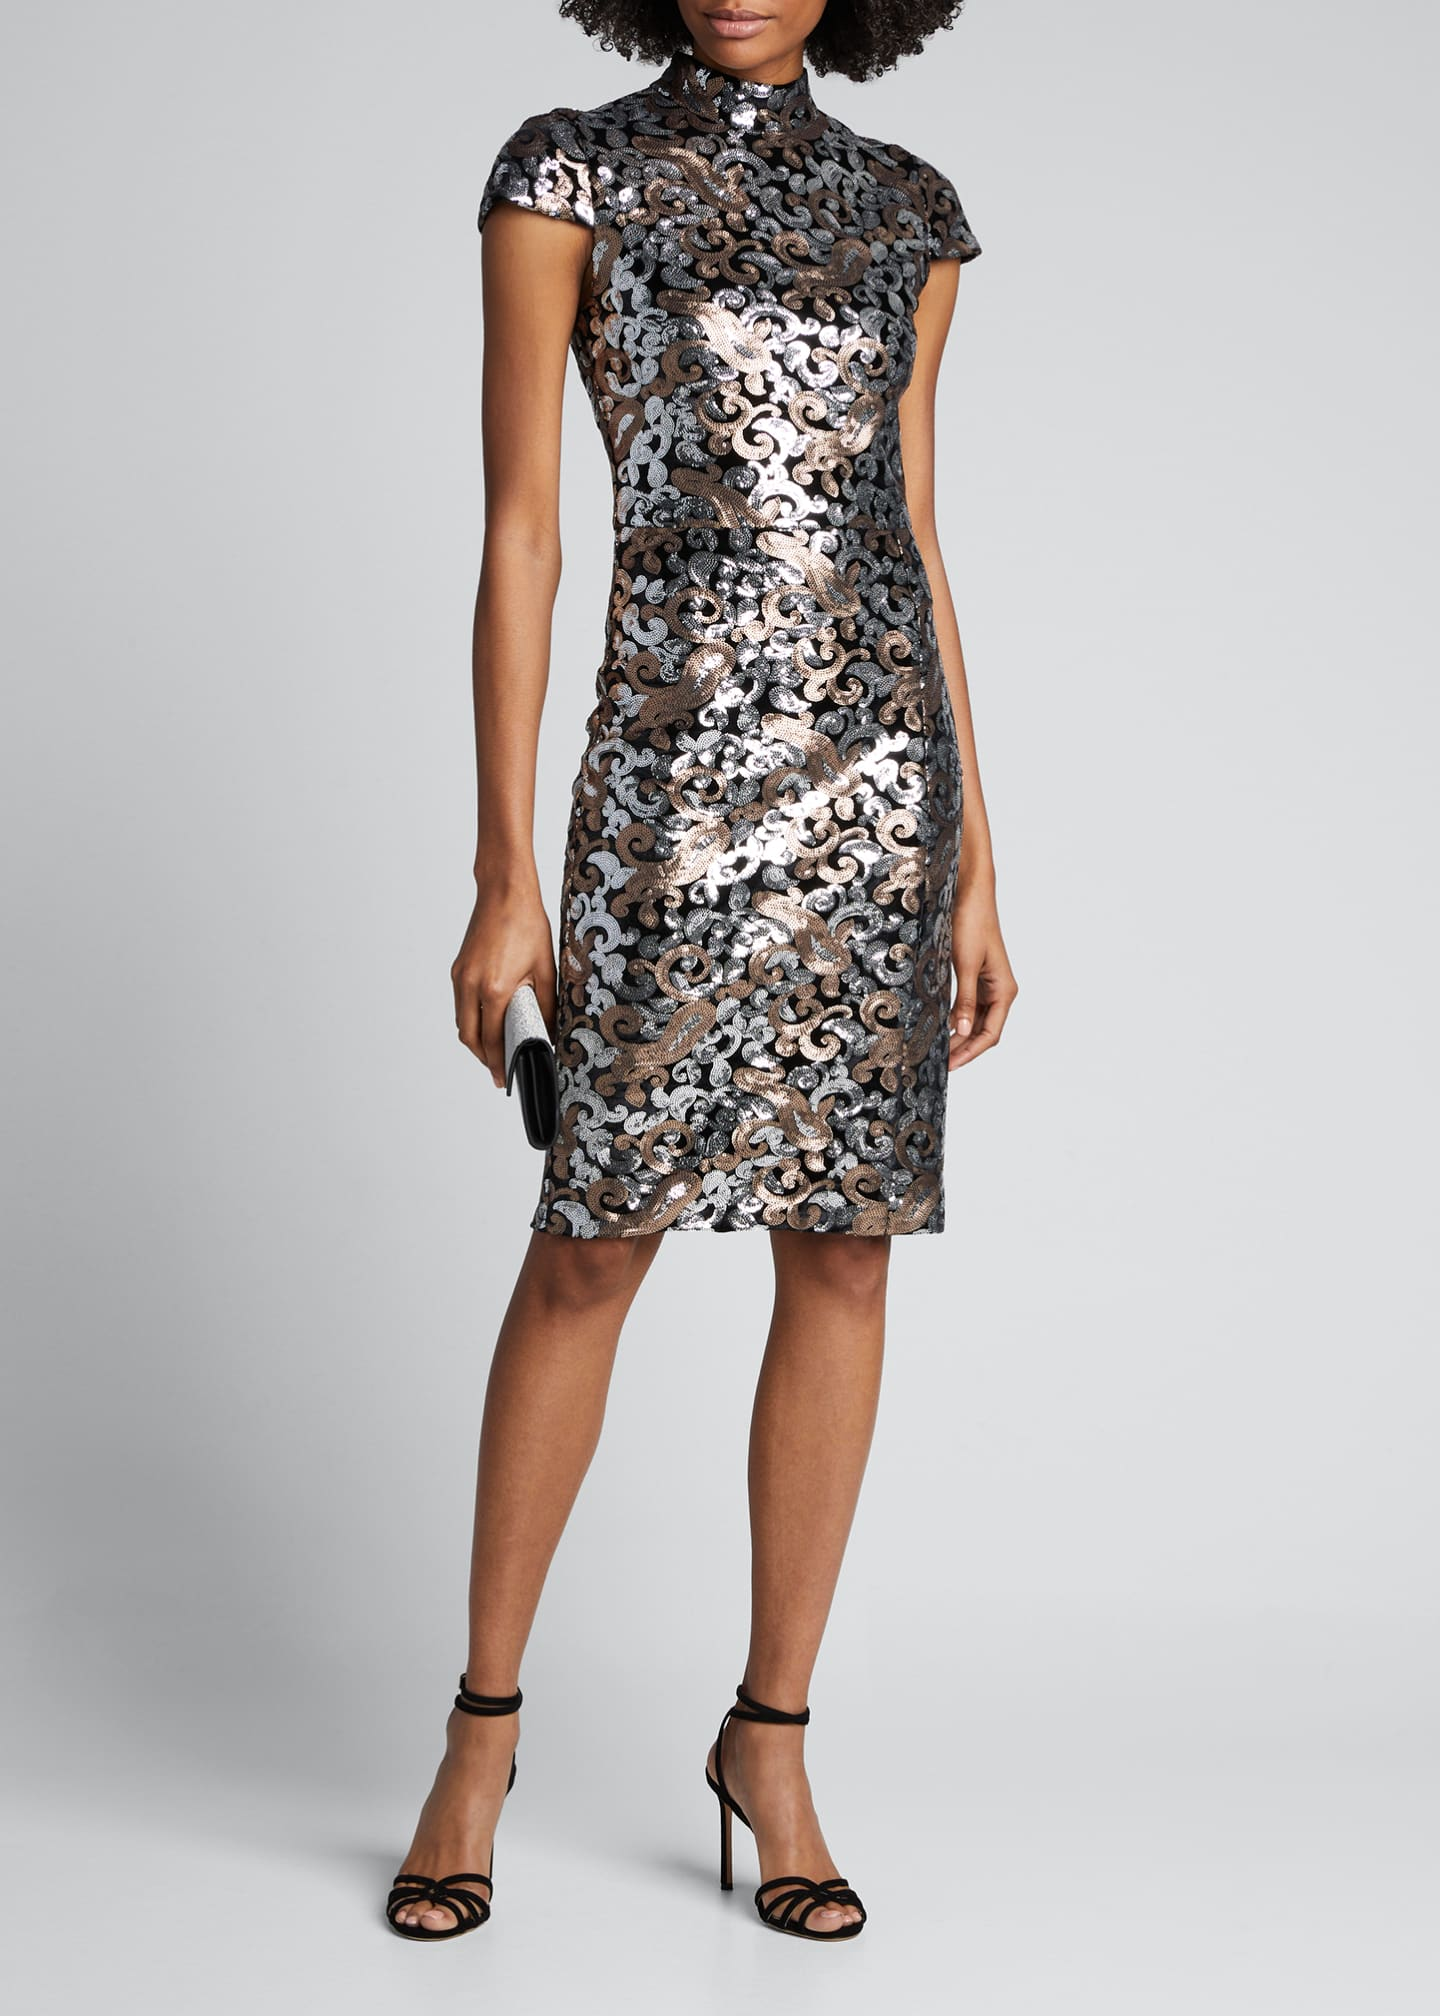 Alice + Olivia Inka Sequined Cap-Sleeve Strong-Shoulder Cocktail